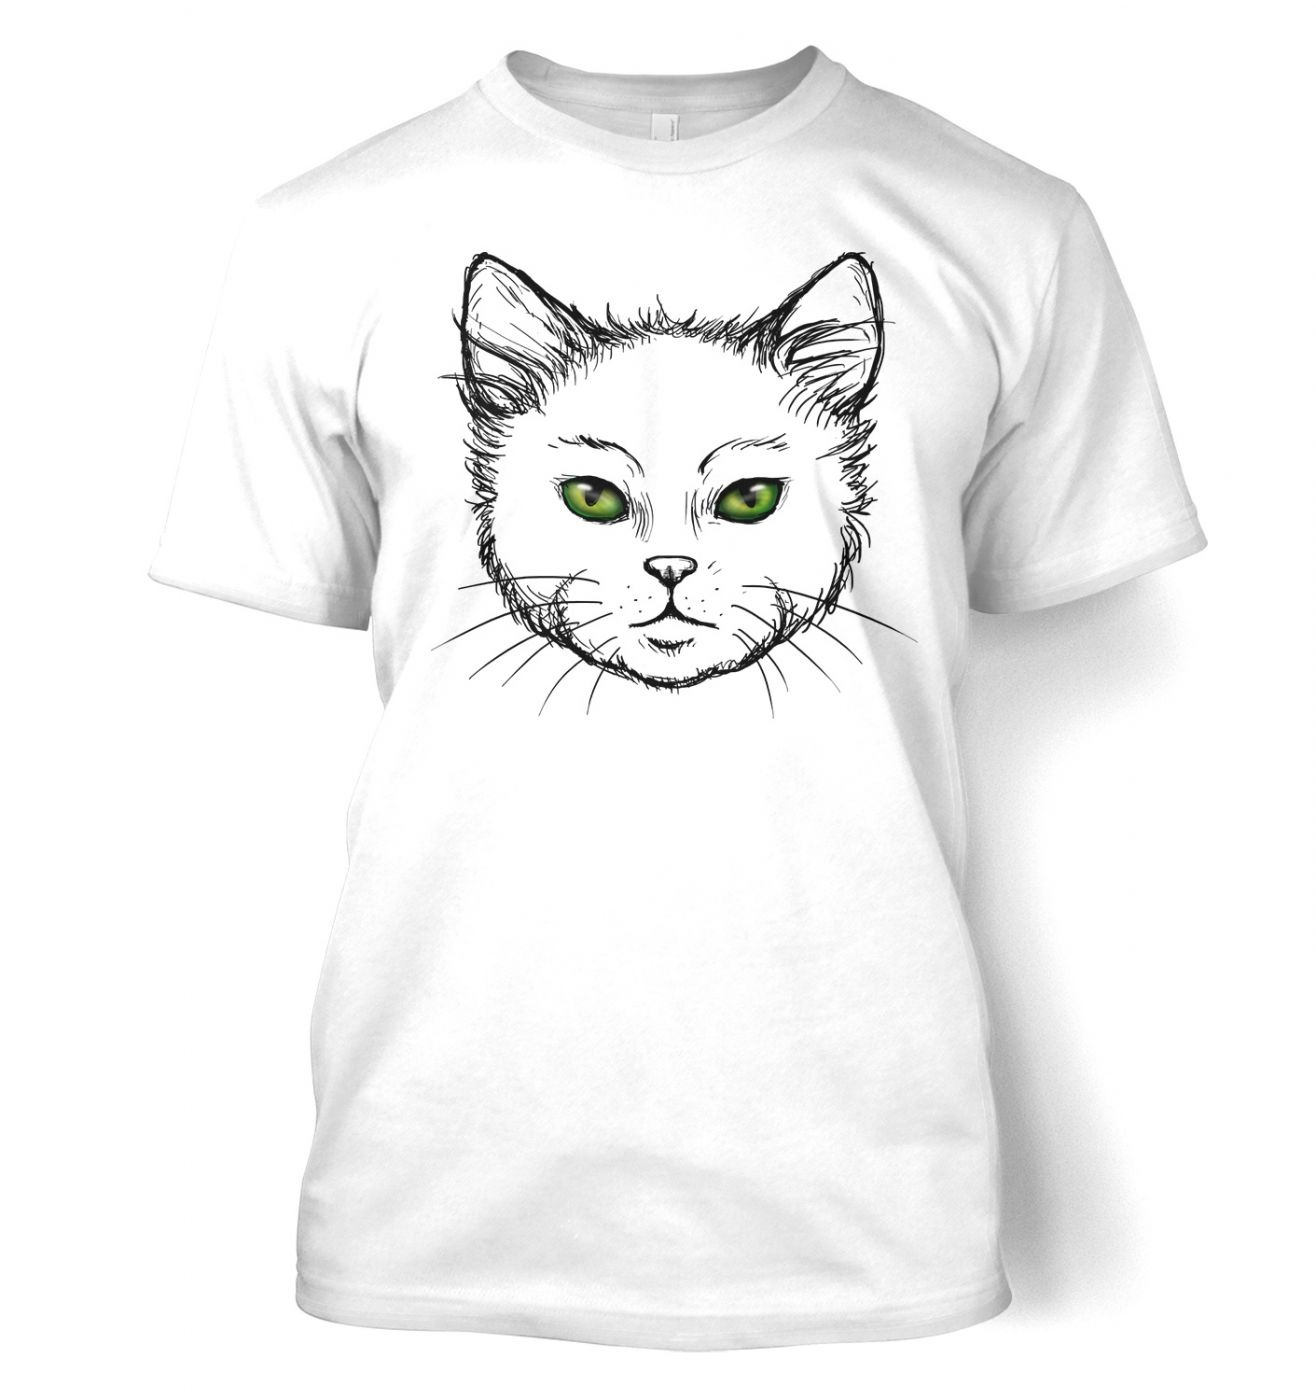 Eyes Of The Cat t-shirt (white) - Cute cat tshirt